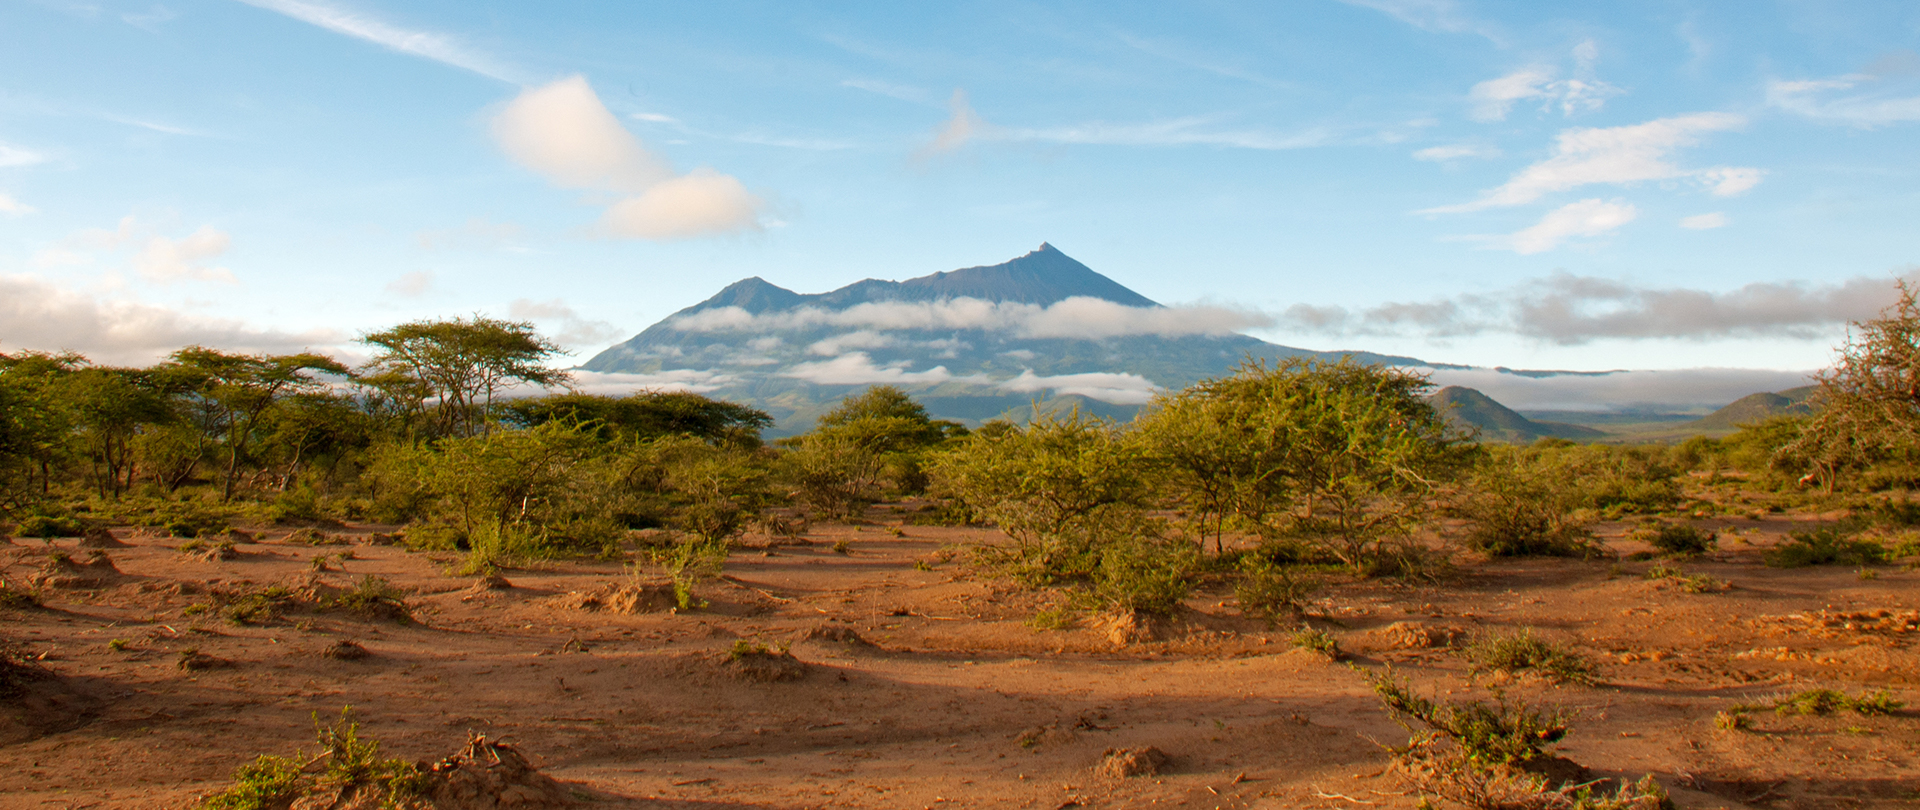 Savanna with shadow of Mount Kilimanjaro in the background